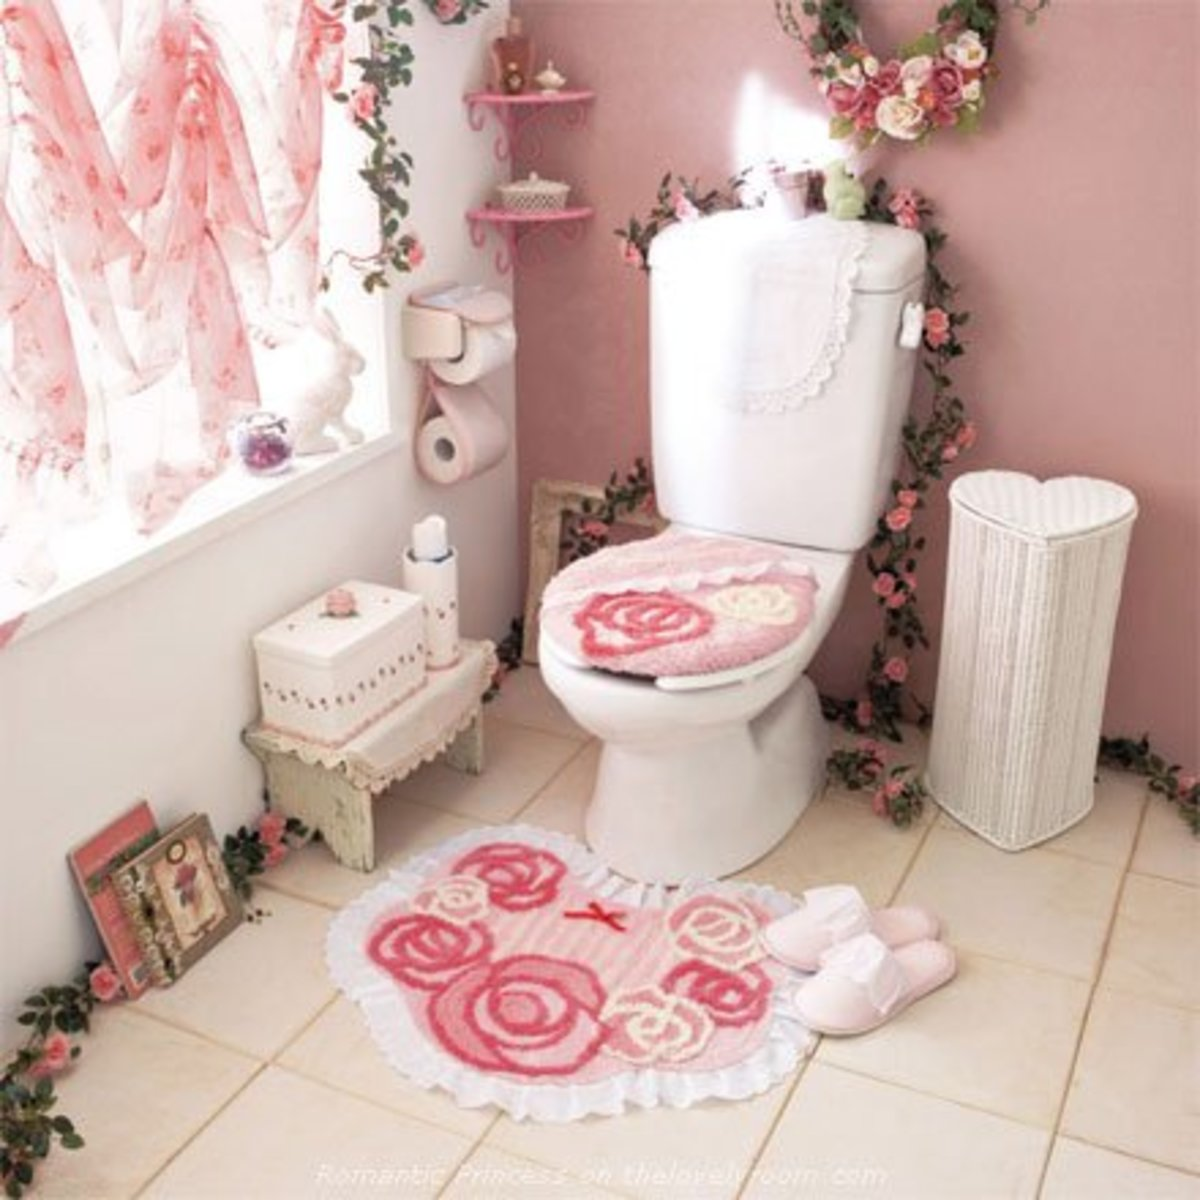 pink bathroom with pink accessories